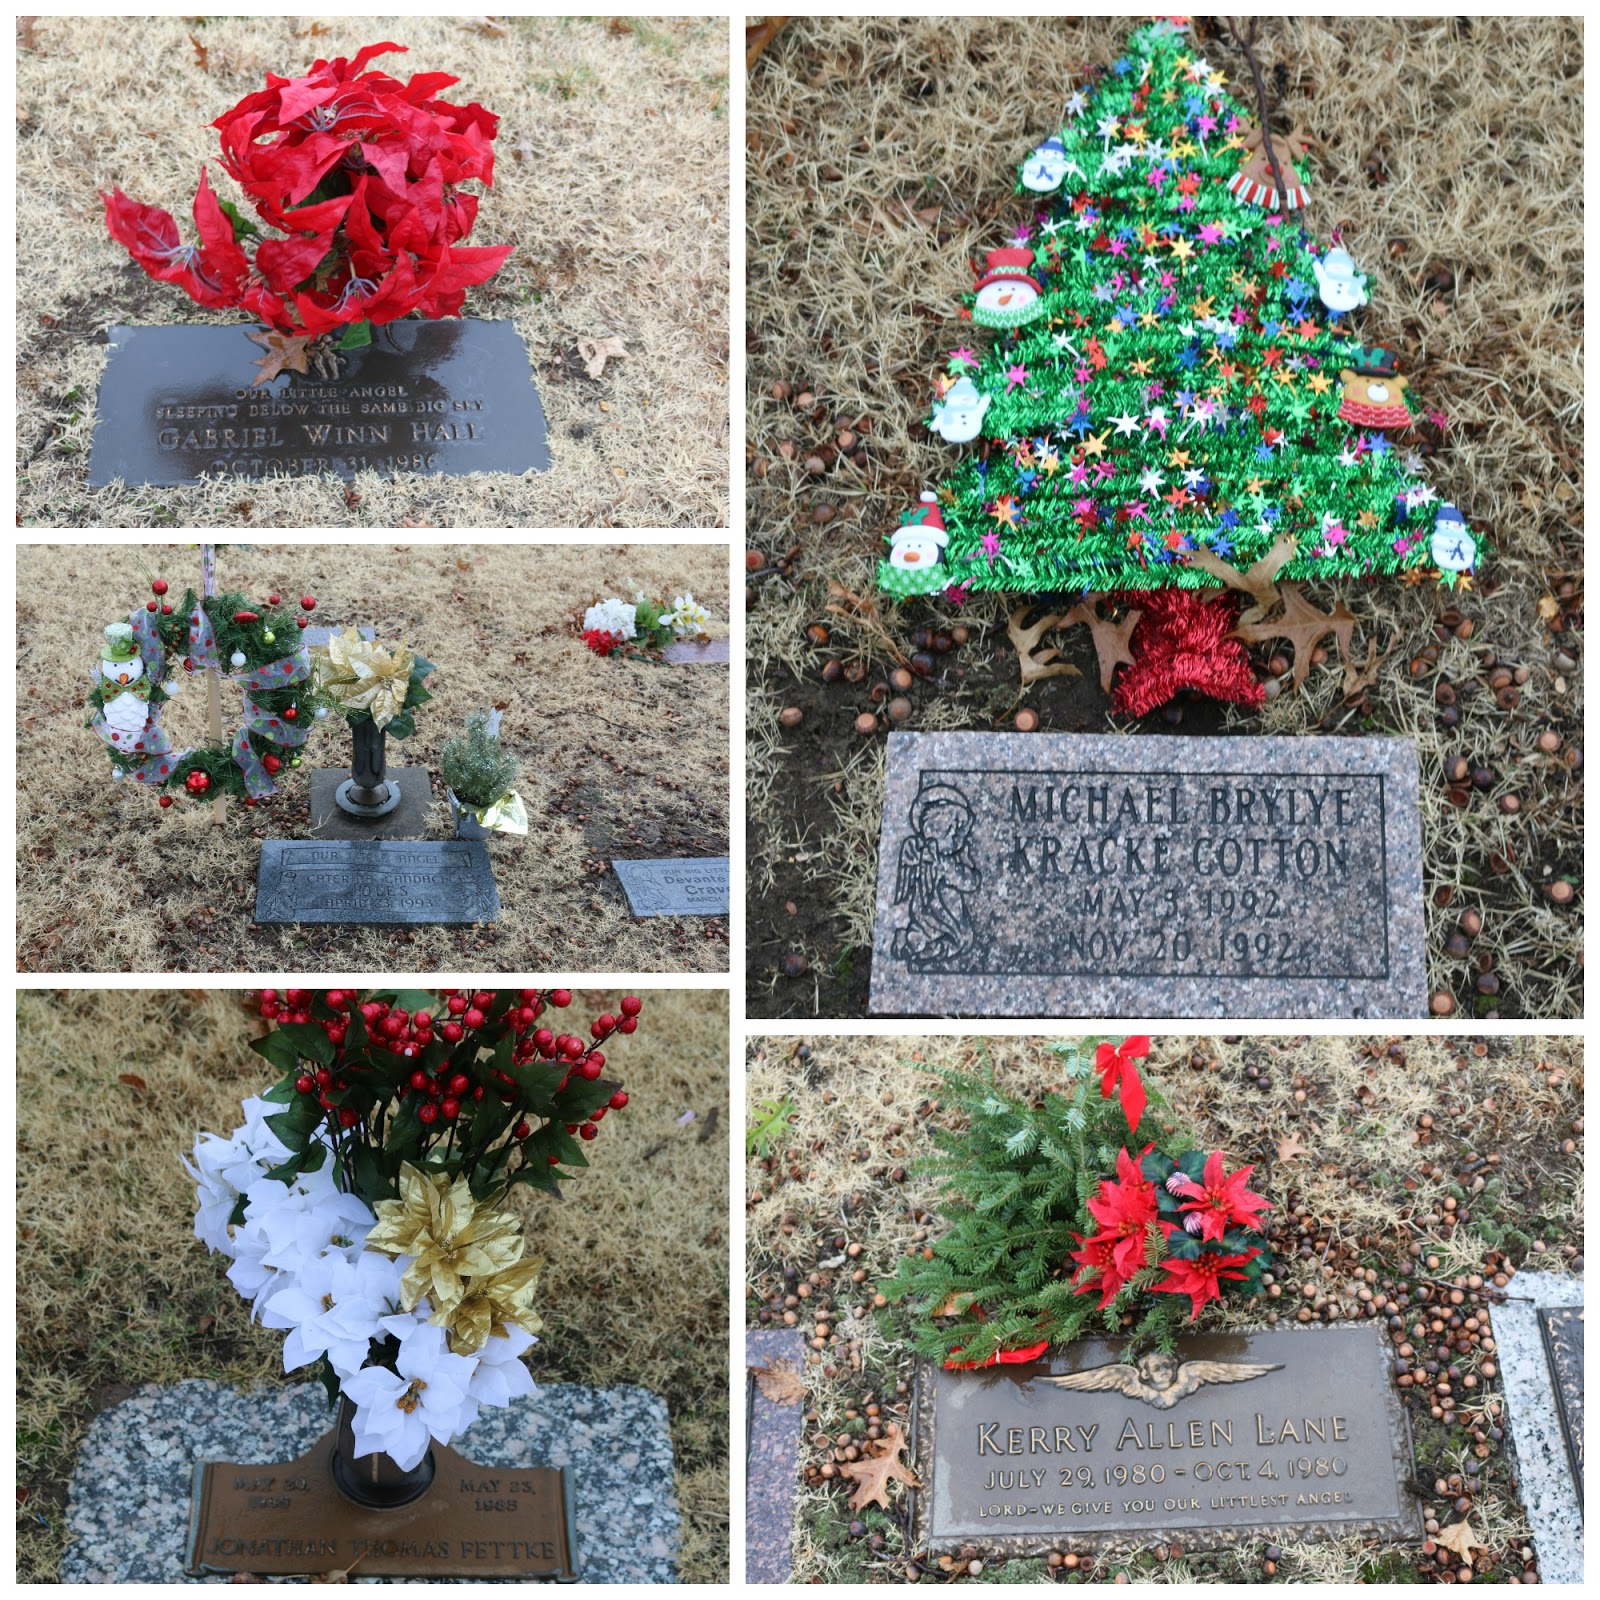 Cemetery Christmas Decorations Part - 45: Several Different Headstones With Christmas Flowers And Decorations On Them.